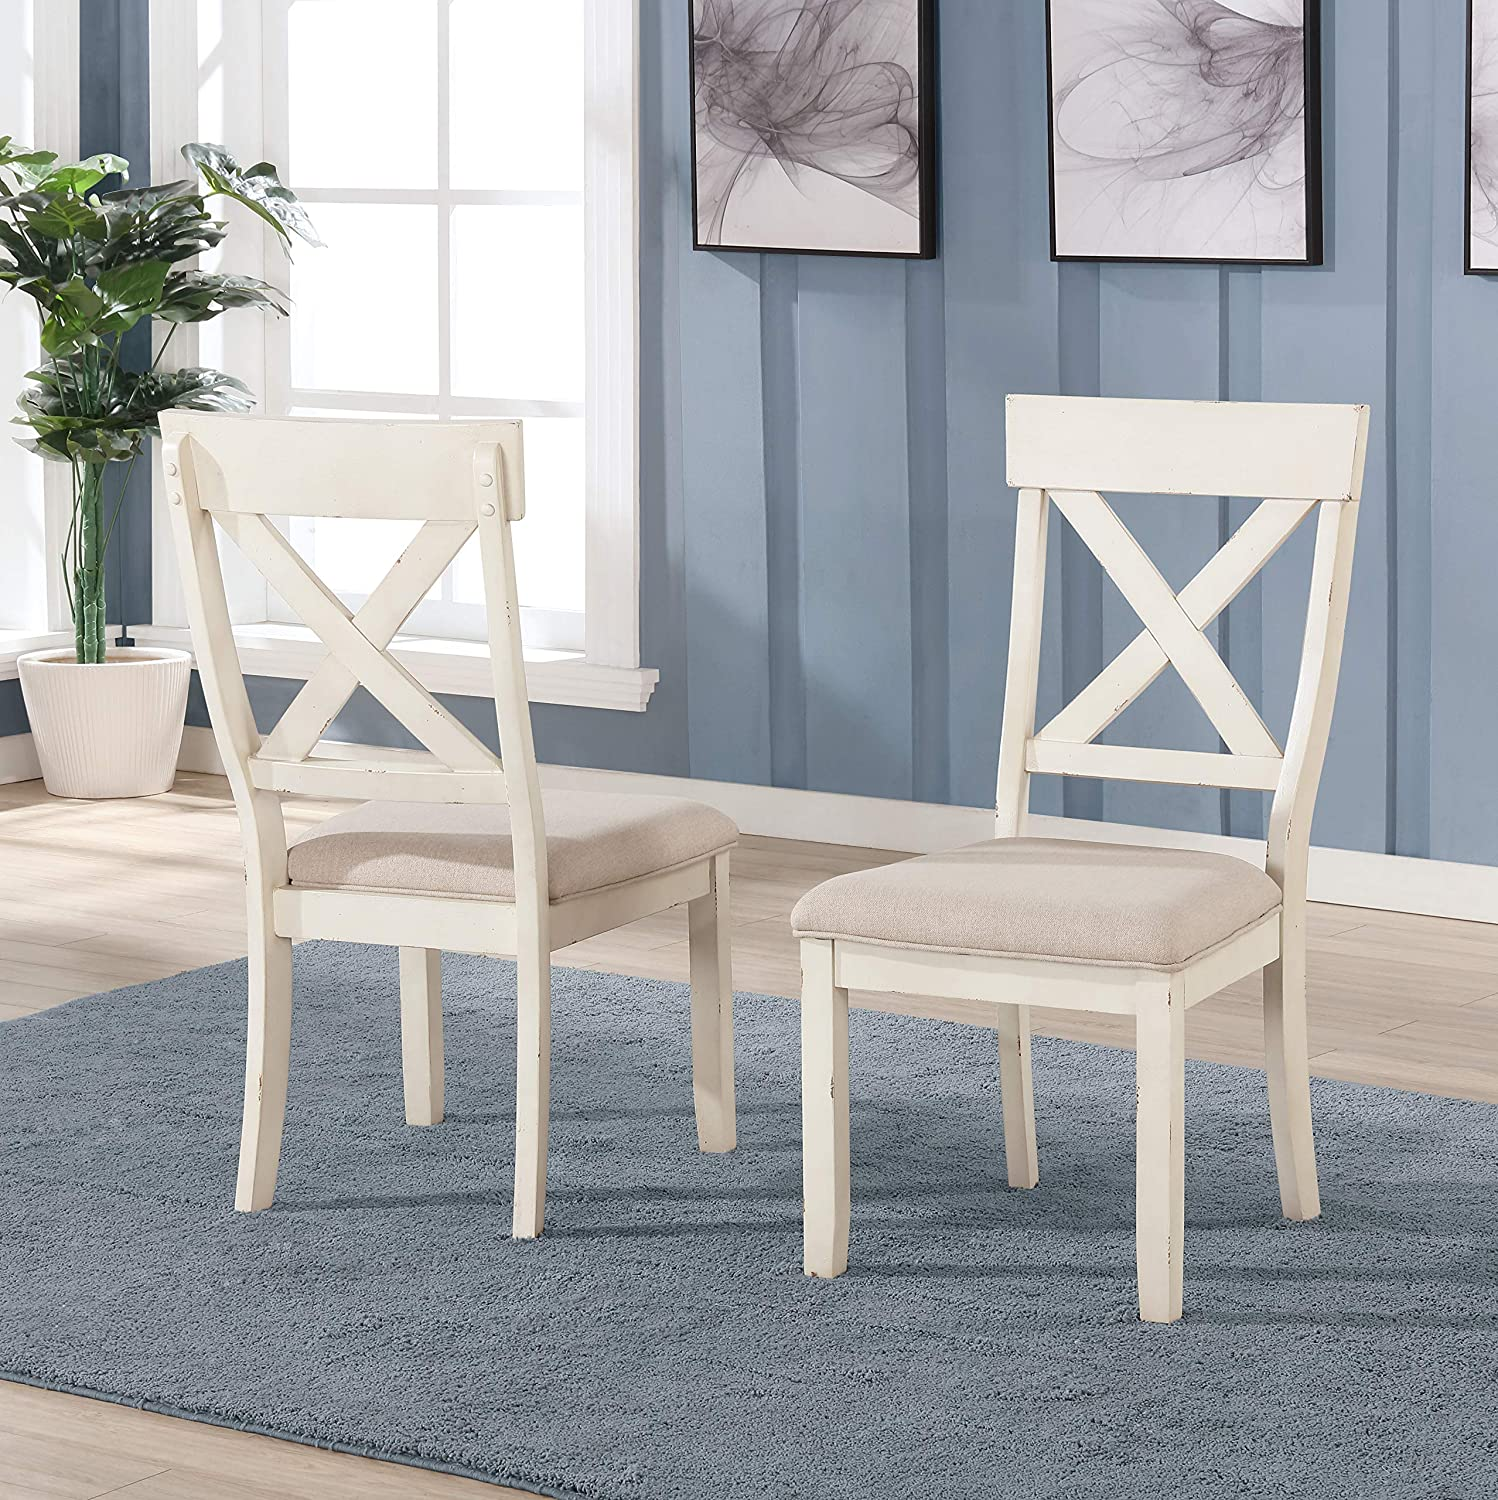 Roundhill Furniture Prato Wood Cross Back Upholstered Dining Chairs, Set of 2, Antique White